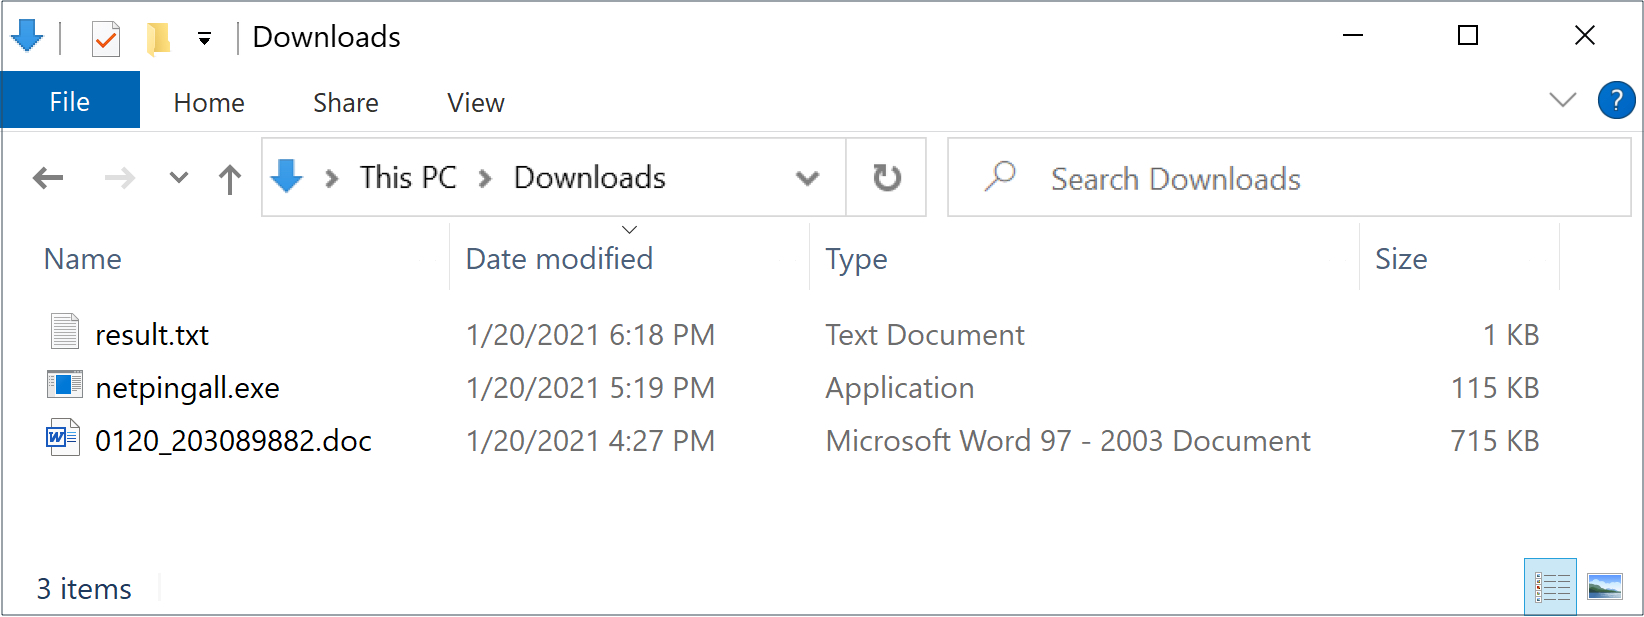 A week later on Jan. 20, a new sample of the same tool was named netpingall.exe, as shown here.